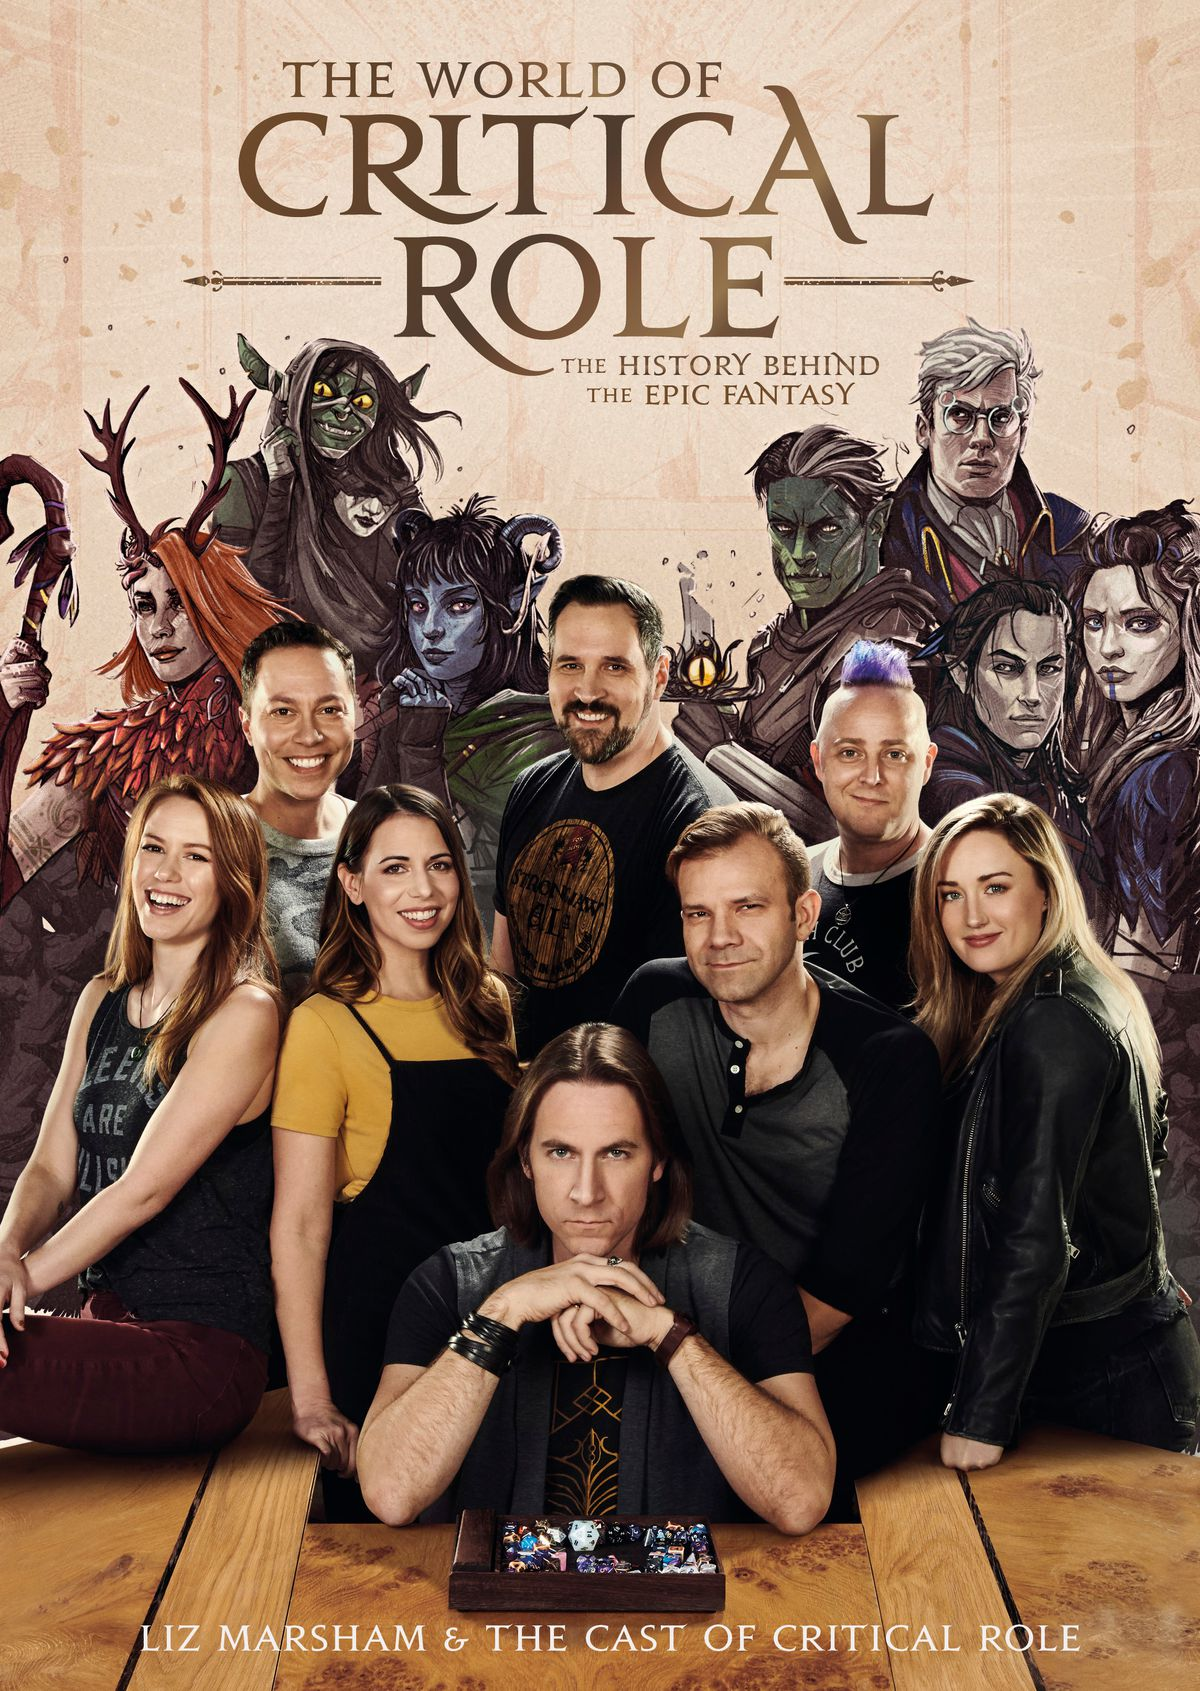 The World of Critical Role book cover